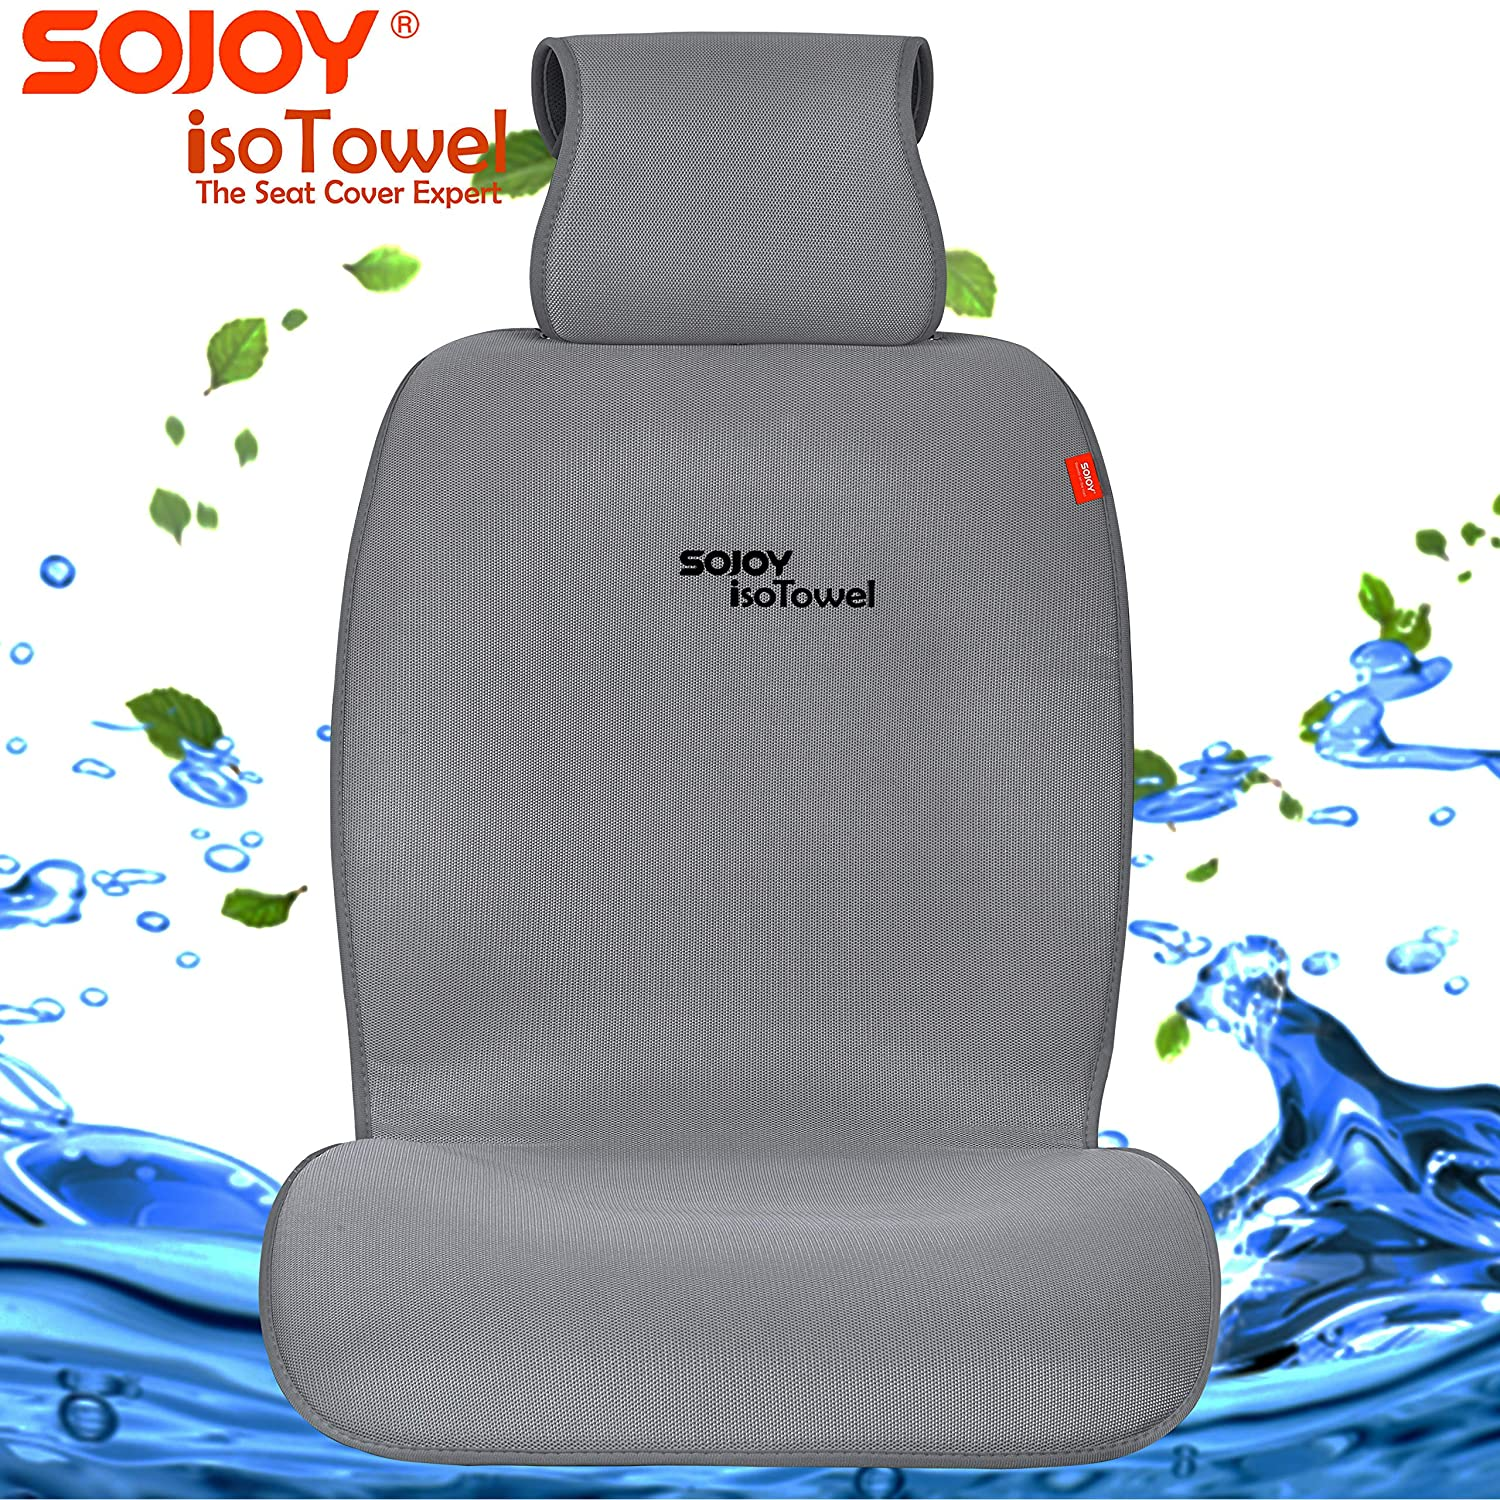 Sojoy IsoTowel Microfiber Seat Protector